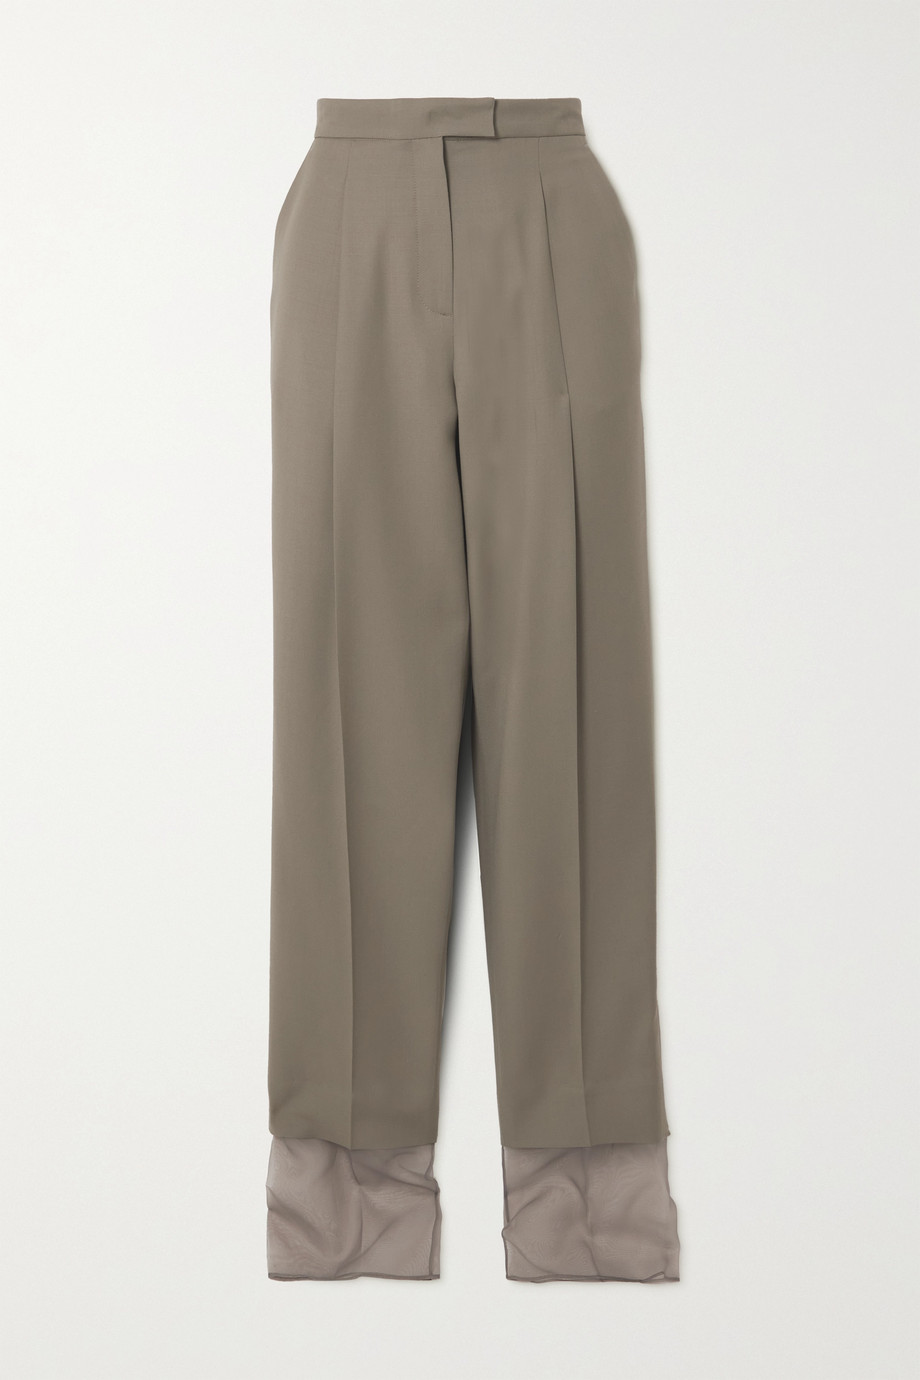 LOW CLASSIC Layered wool and organza straight-leg pants